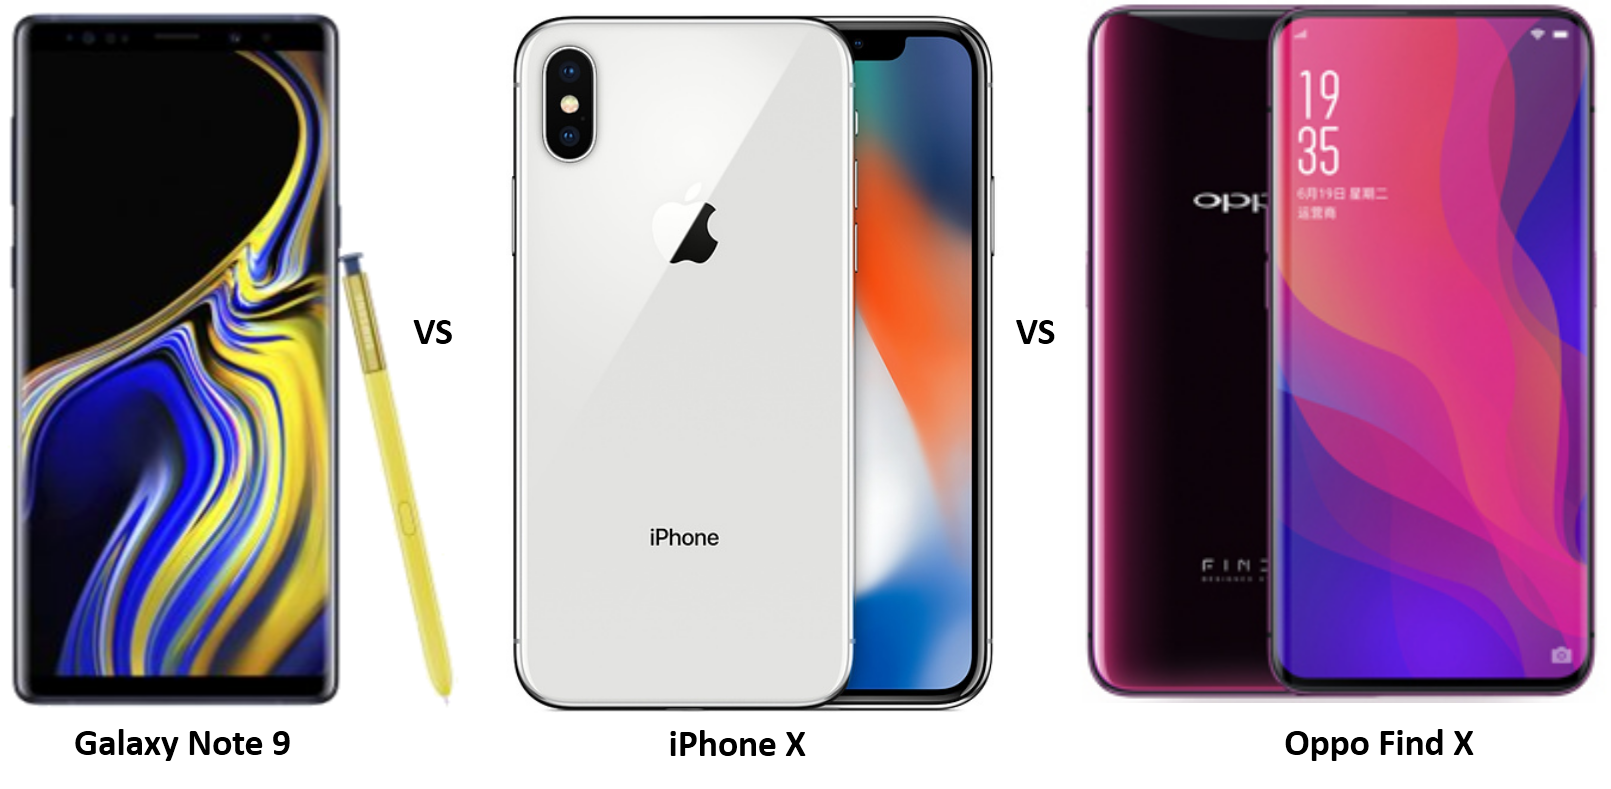 Samsung Galaxy Note 9 vs iPhone X vs Oppo Find X: The Battle of High Priced Flagships